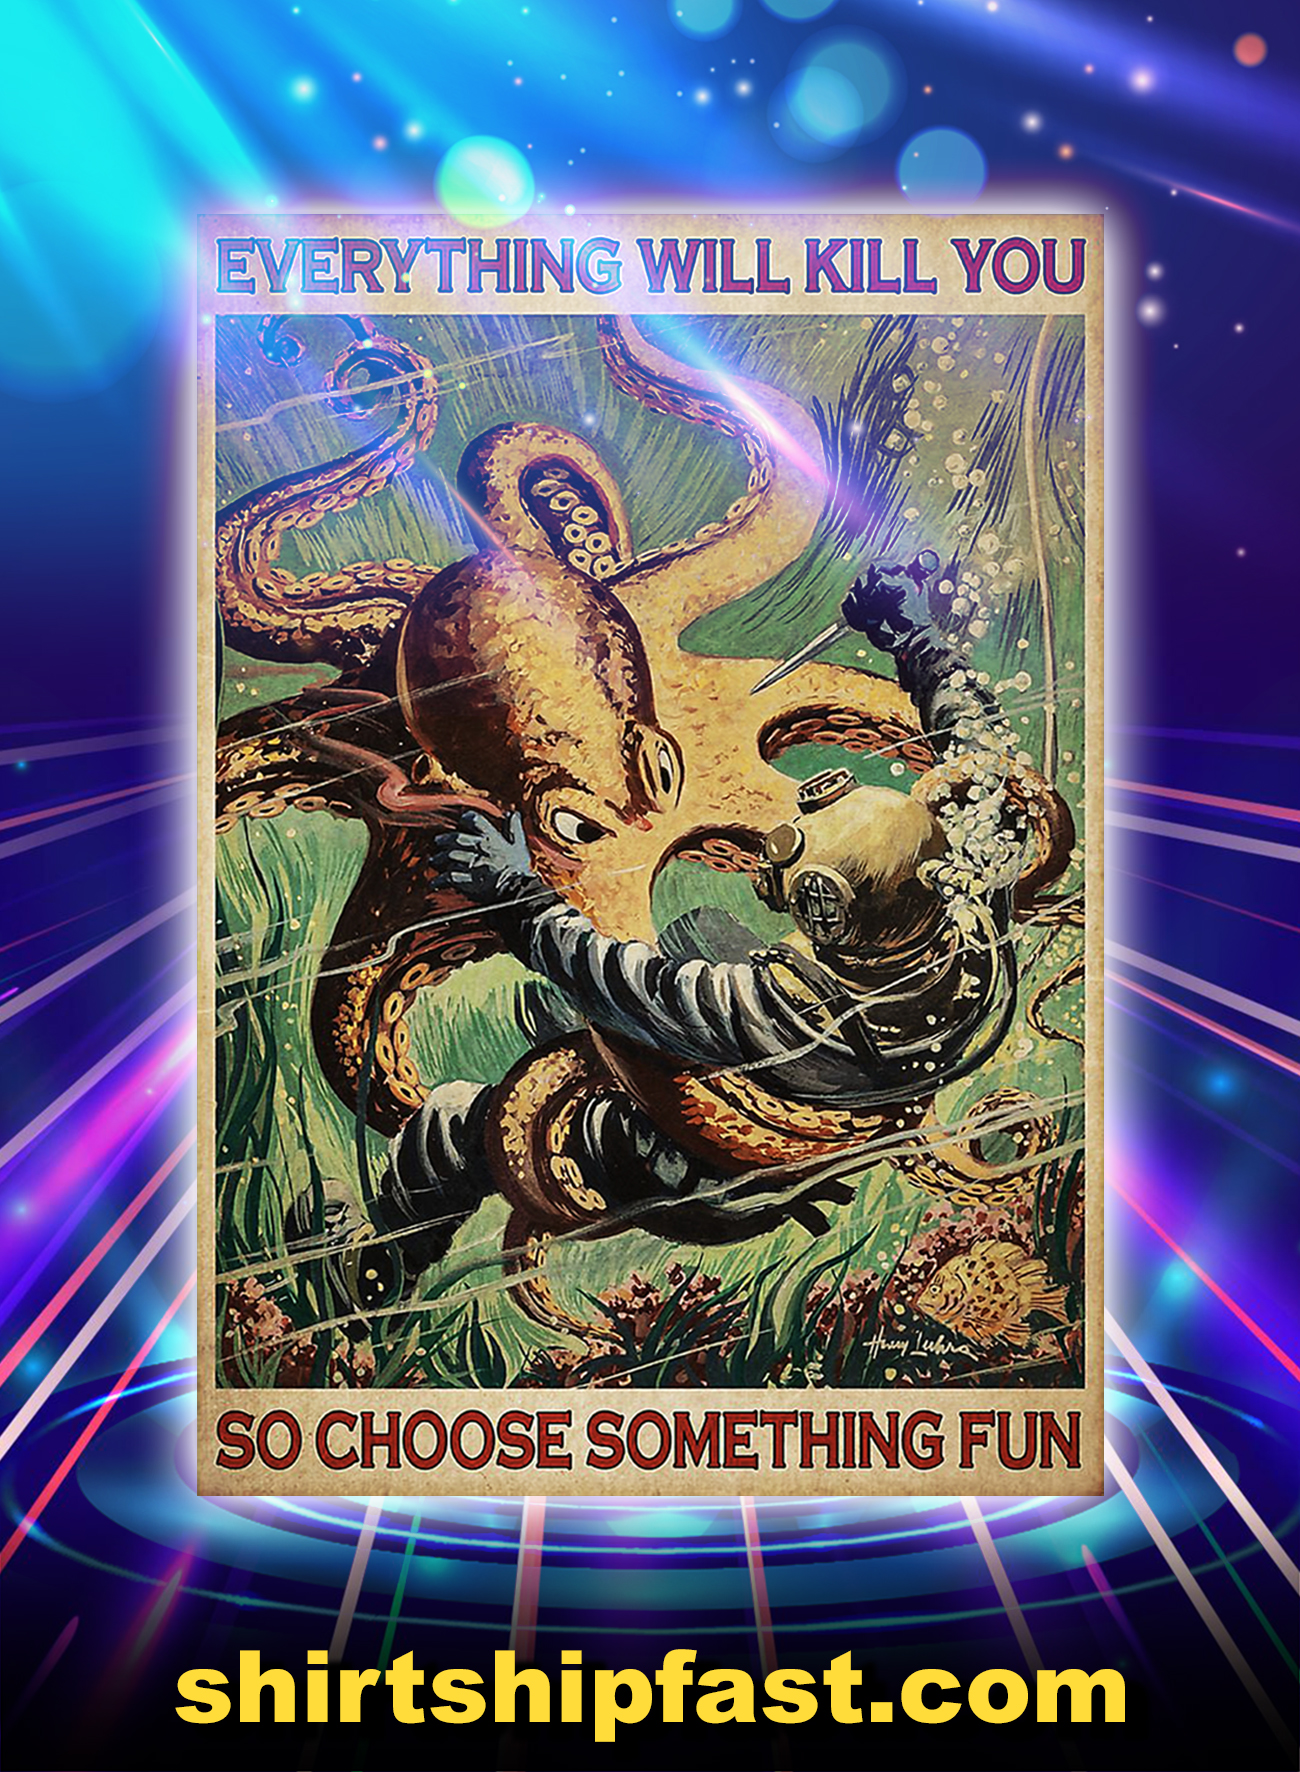 Diver And Octopus Everything Will Kill You Poster - A1